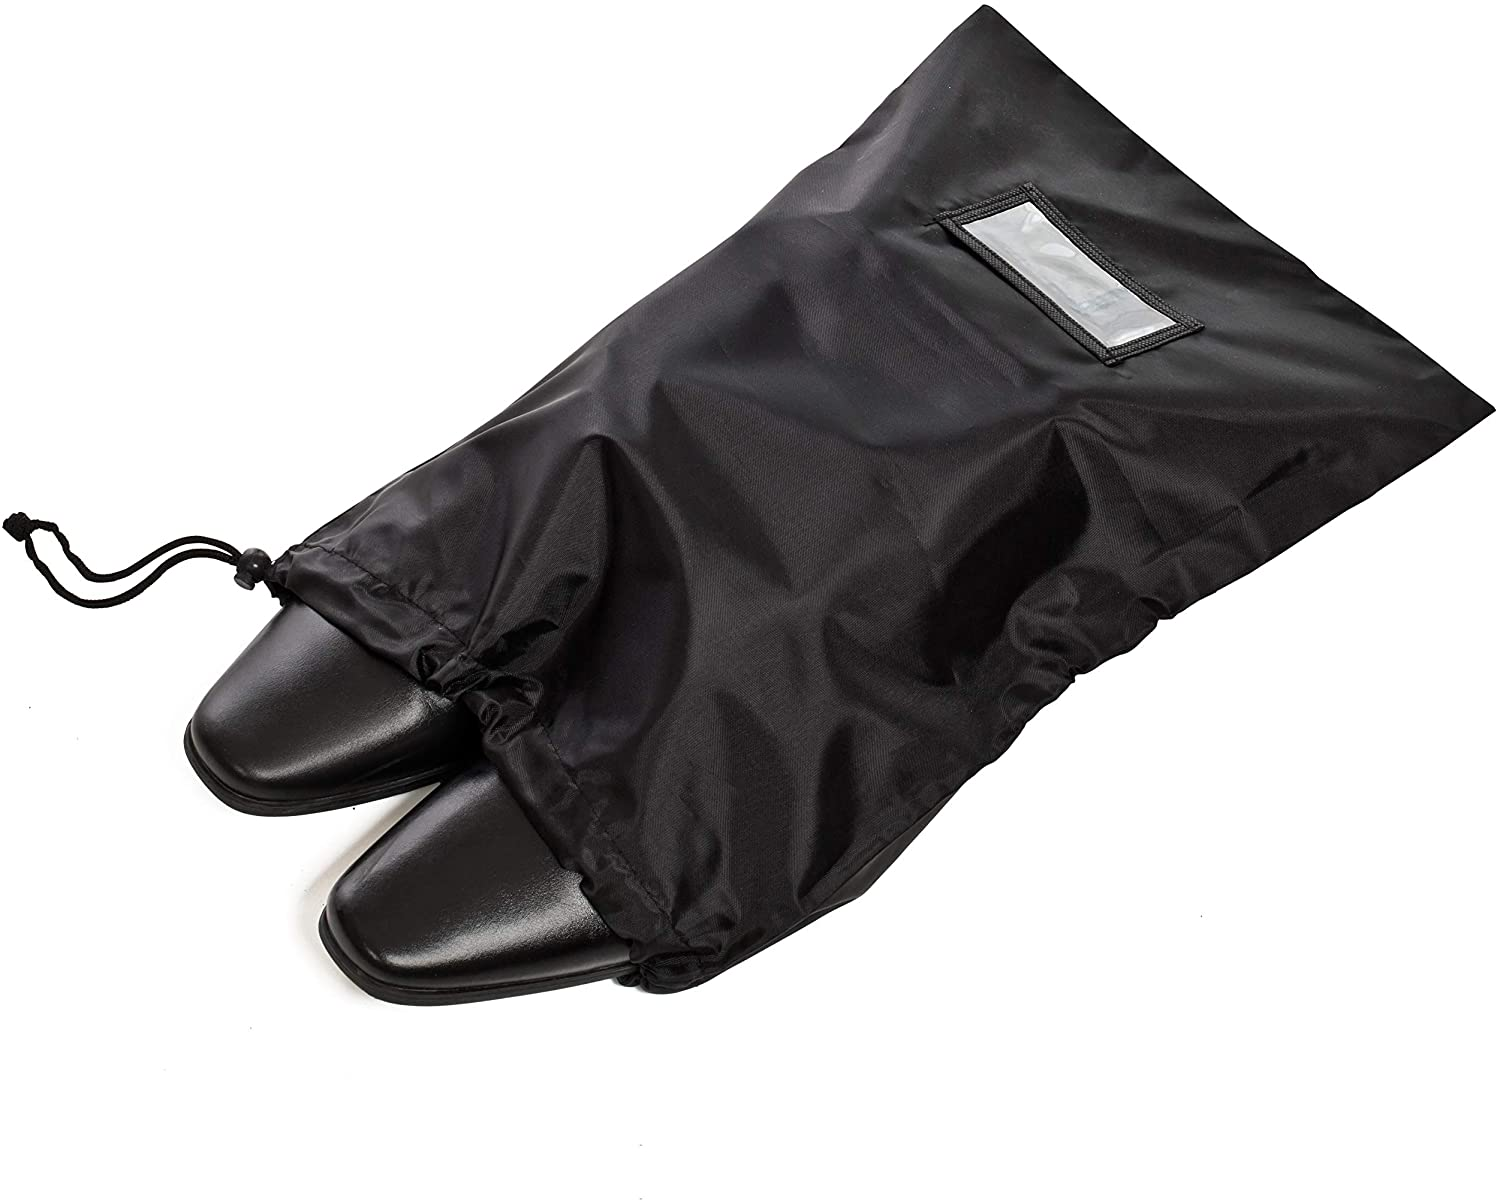 [25 Pack] Black Drawstring Bags for Storage, Shoes, Wardrobe, Pantry, Travel and Organization